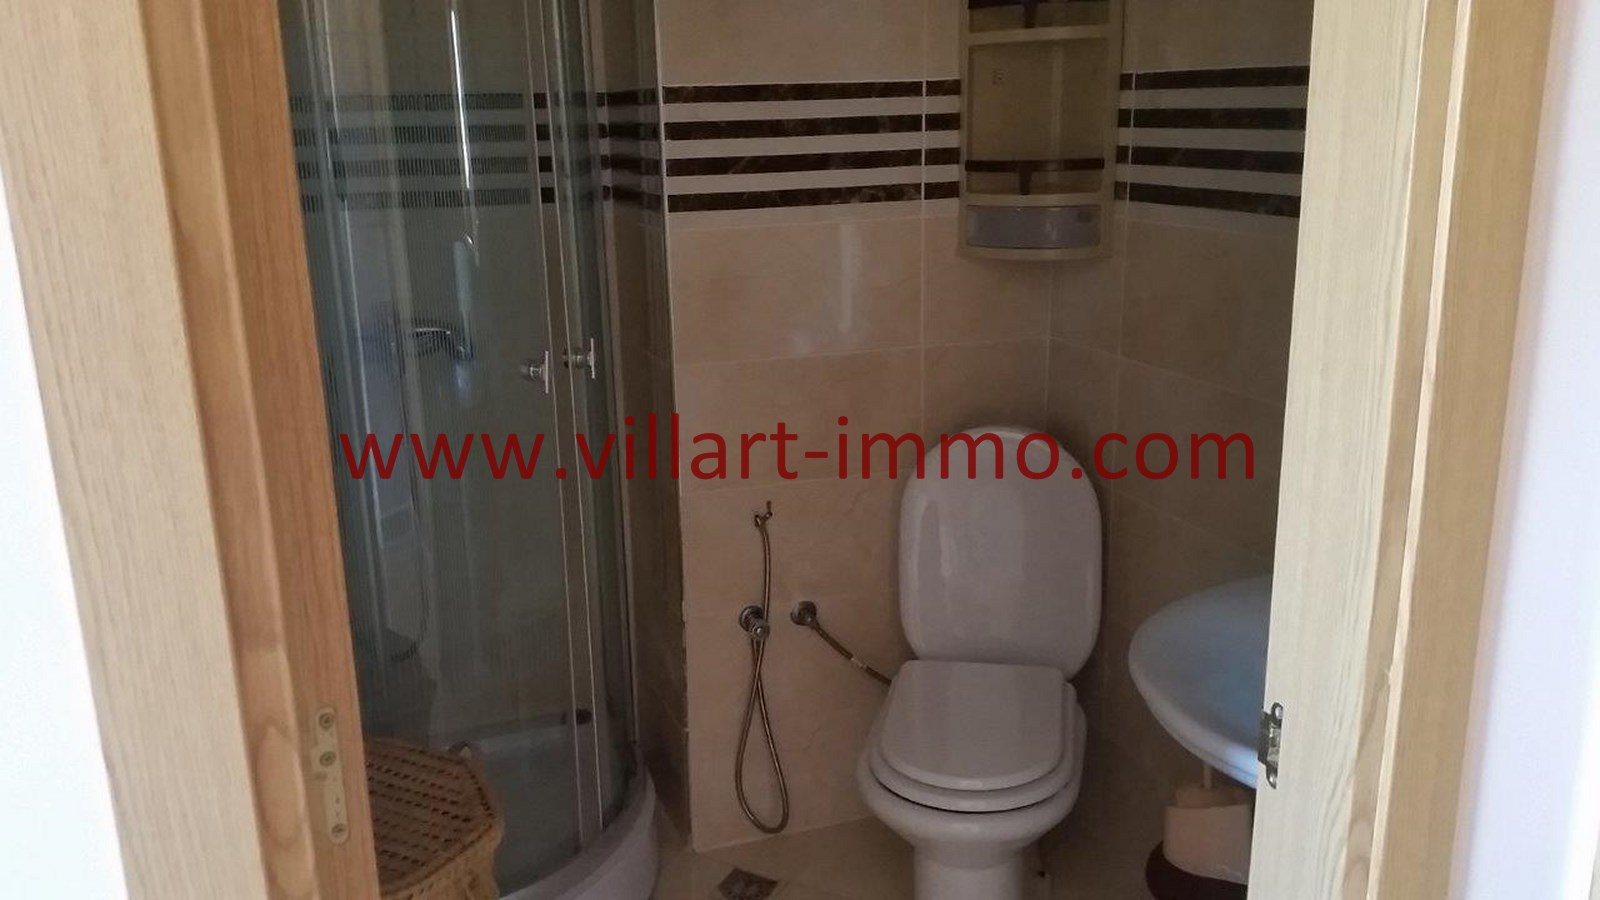 Location appartement meubl tanger avec terrasse zone for Location meuble